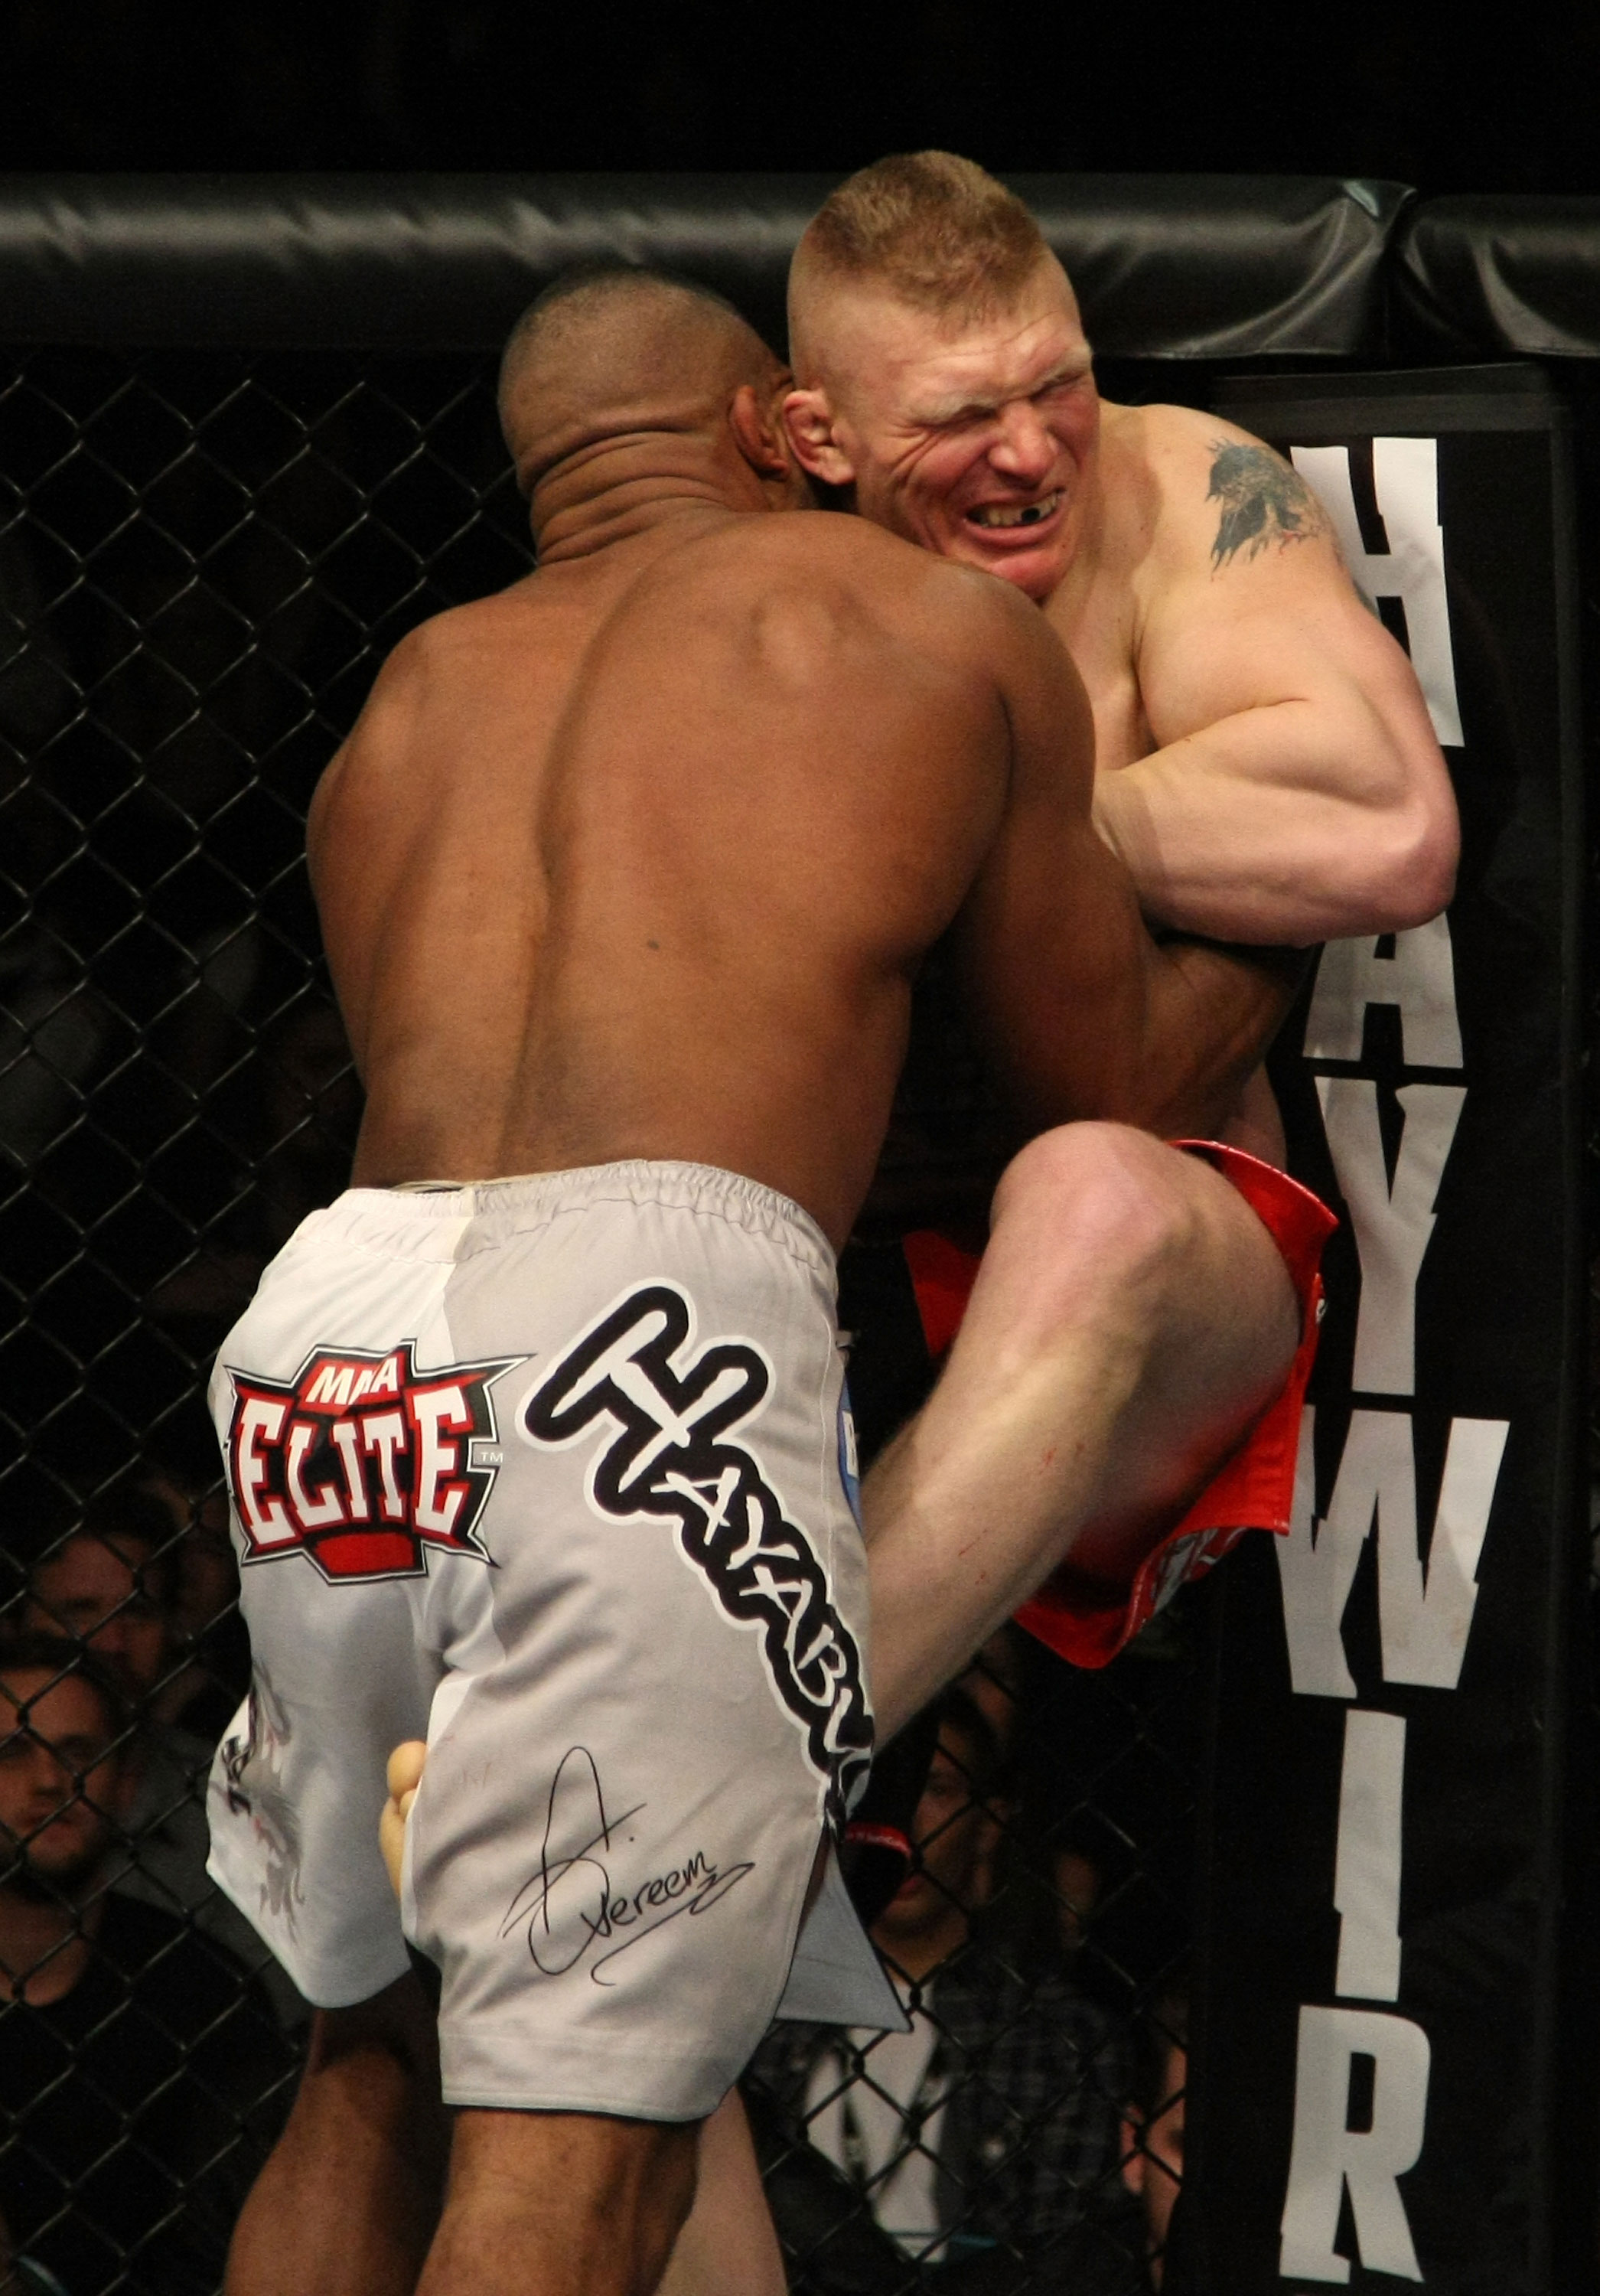 LAS VEGAS, NV - DECEMBER 30:  Alistair Overeem (white shorts) and Brock Lesnar (red shorts) struggle against the Octagon fence during the UFC 141 event at the MGM Grand Garden Arena on December 30, 2011 in Las Vegas, Nevada.  (Photo by Donald Miralle/Zuffa LLC/Zuffa LLC via Getty Images) *** Local Caption *** Alistair Overeem; Brock Lesnar